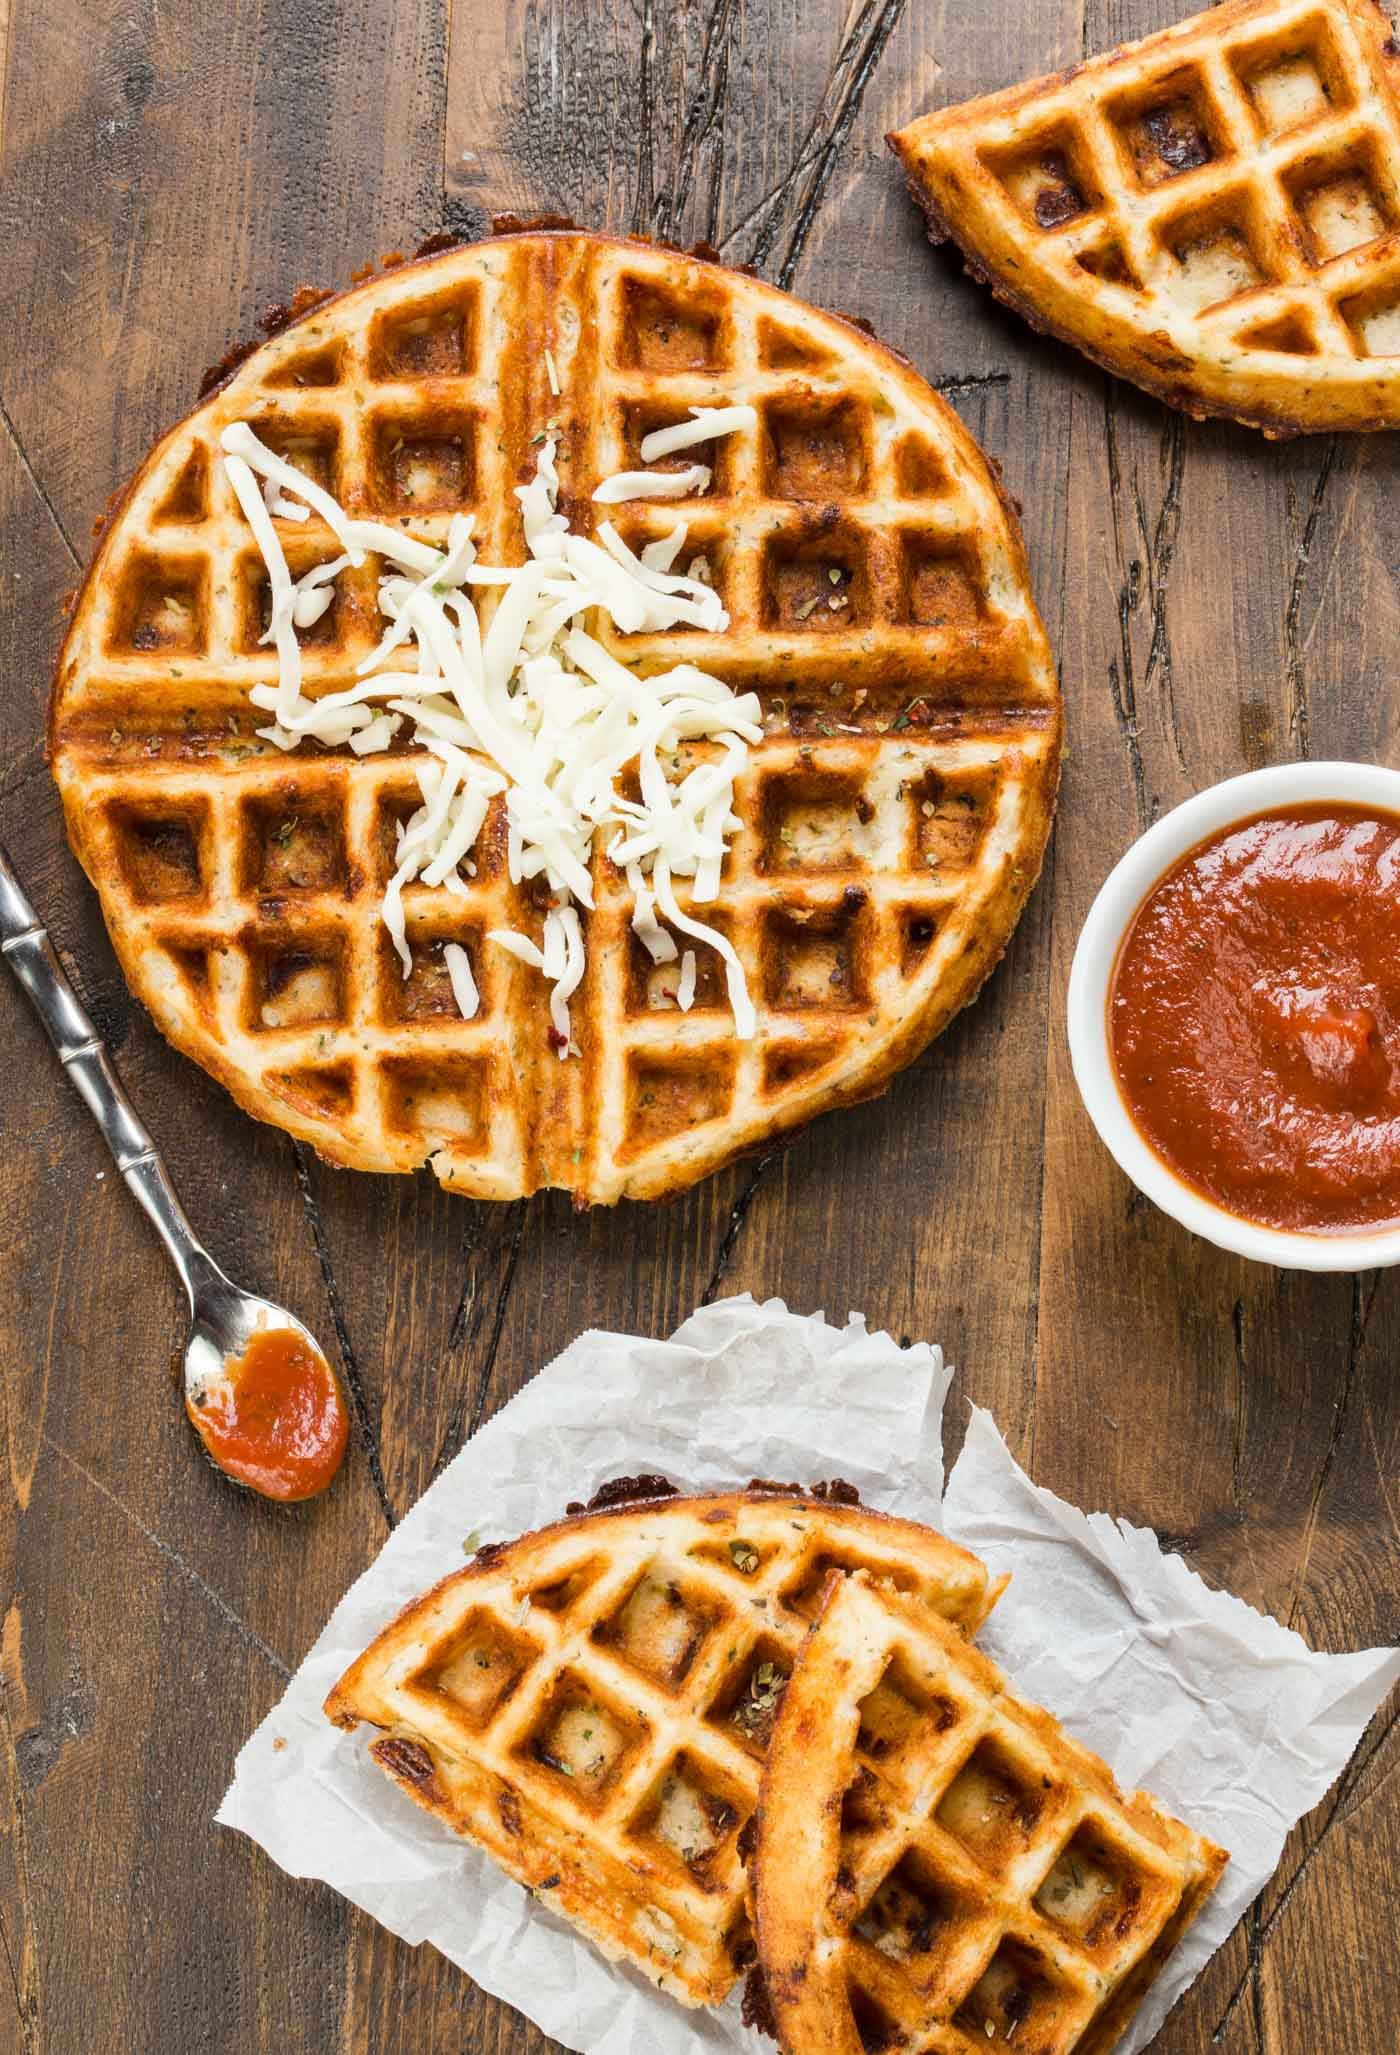 Dip these Pizza Waffle Bites in warm pizza sauce for a fun snack idea. Check out the rest of our suggestions for Smart Summer Snacks for Kids!